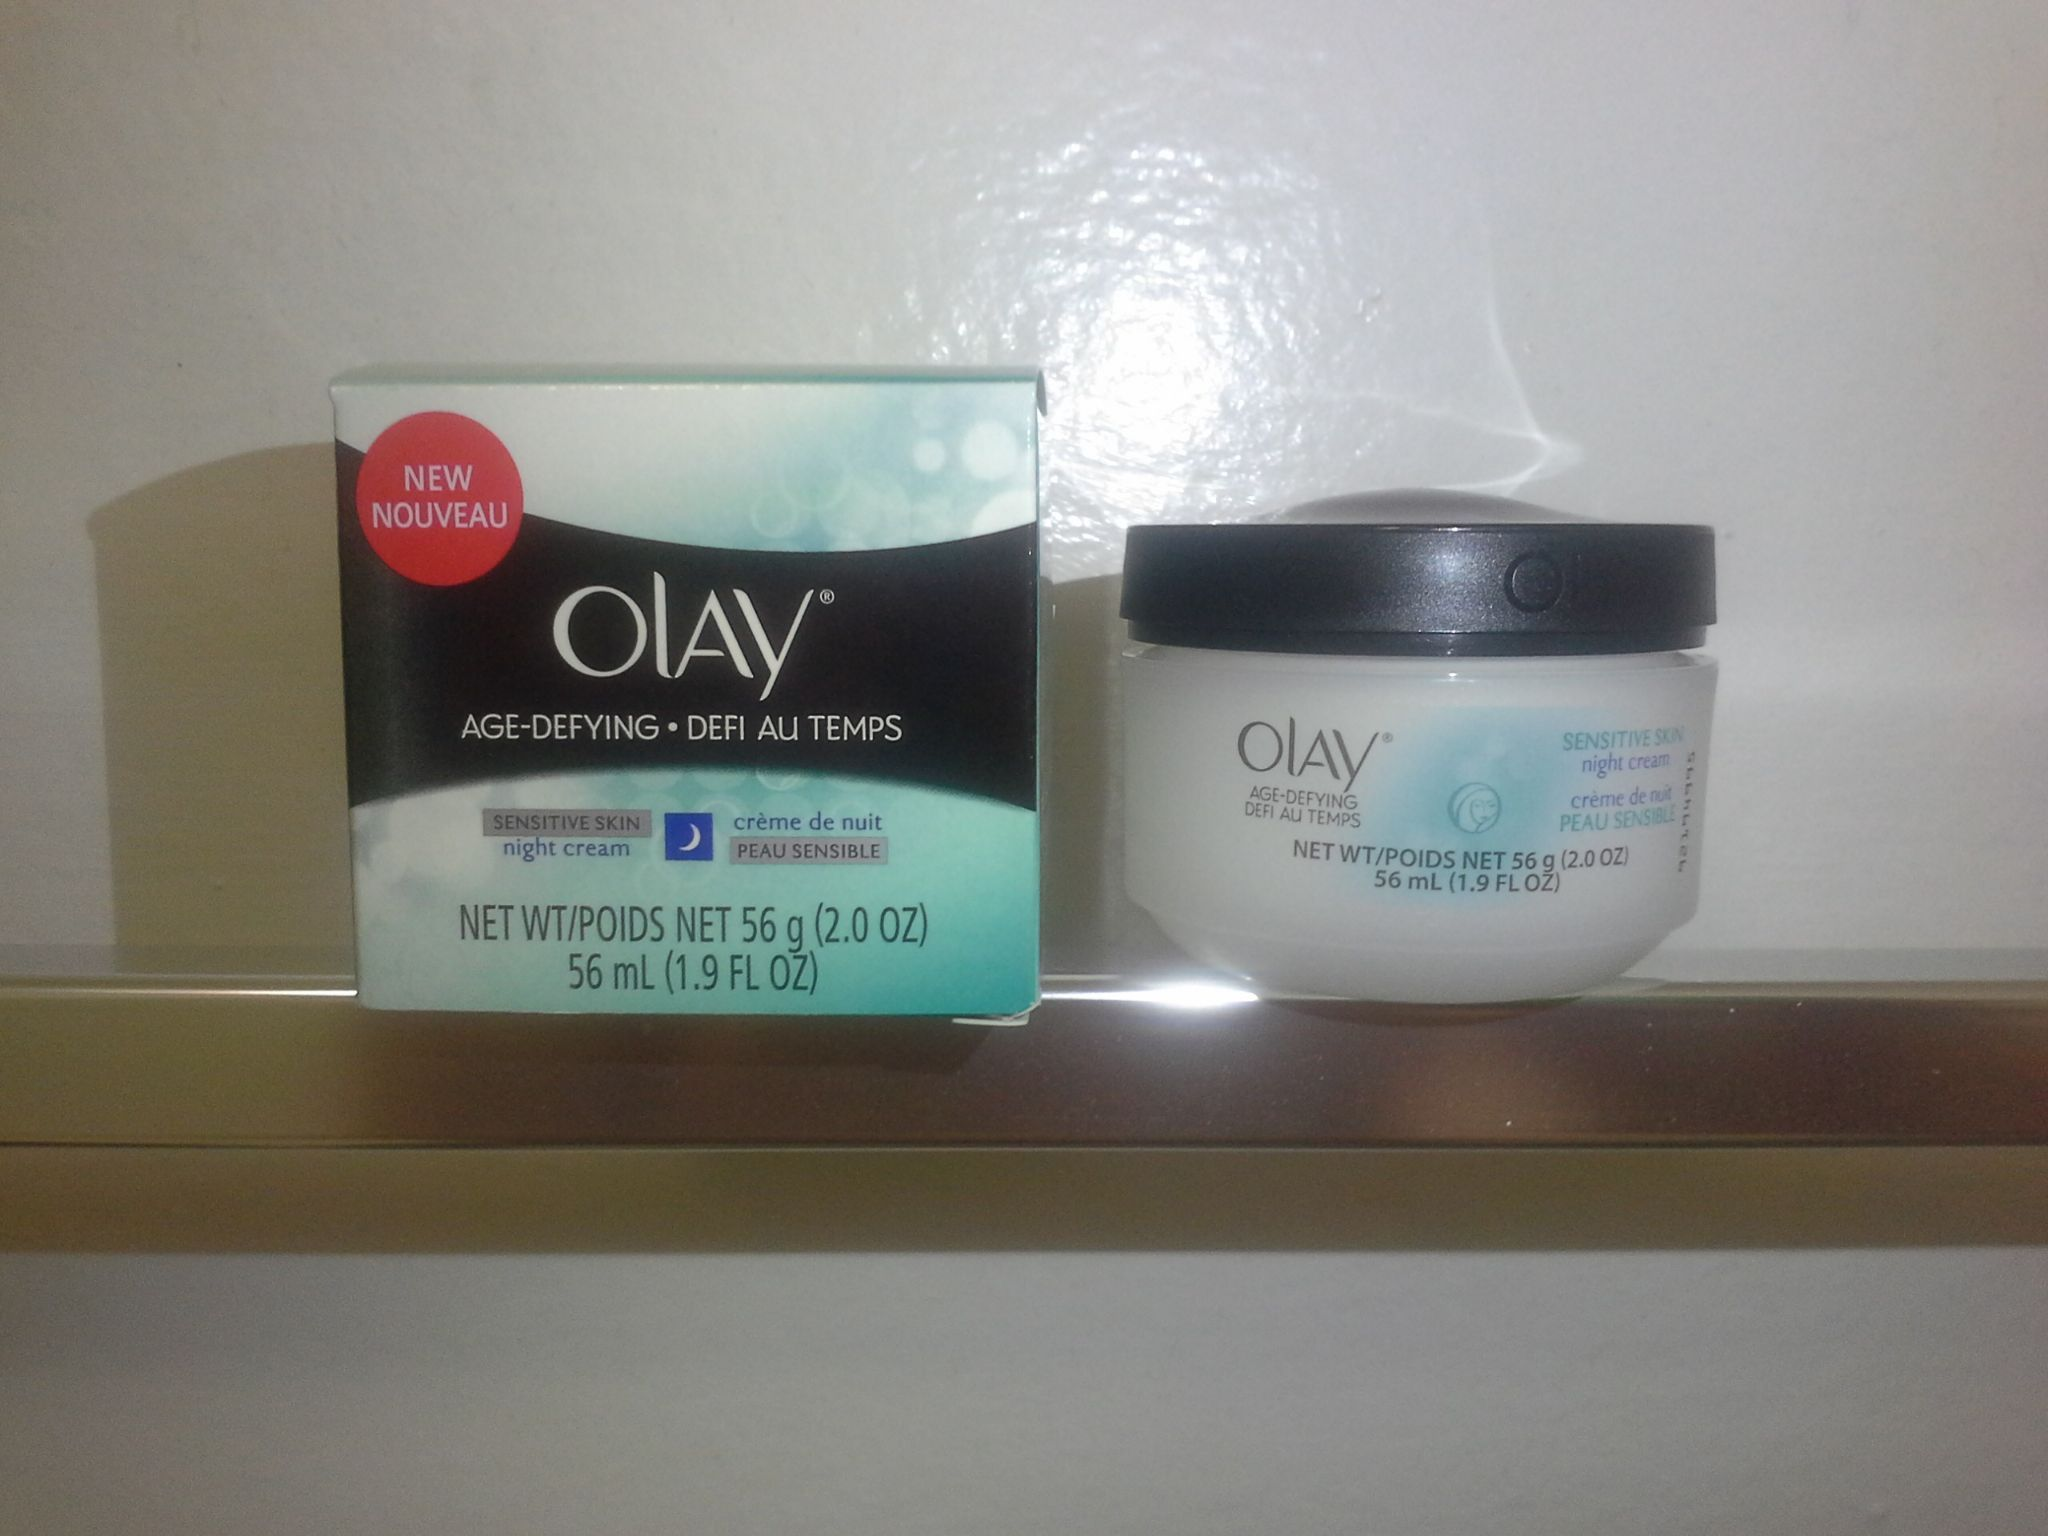 Age Defying Sensitive Skin Night Cream